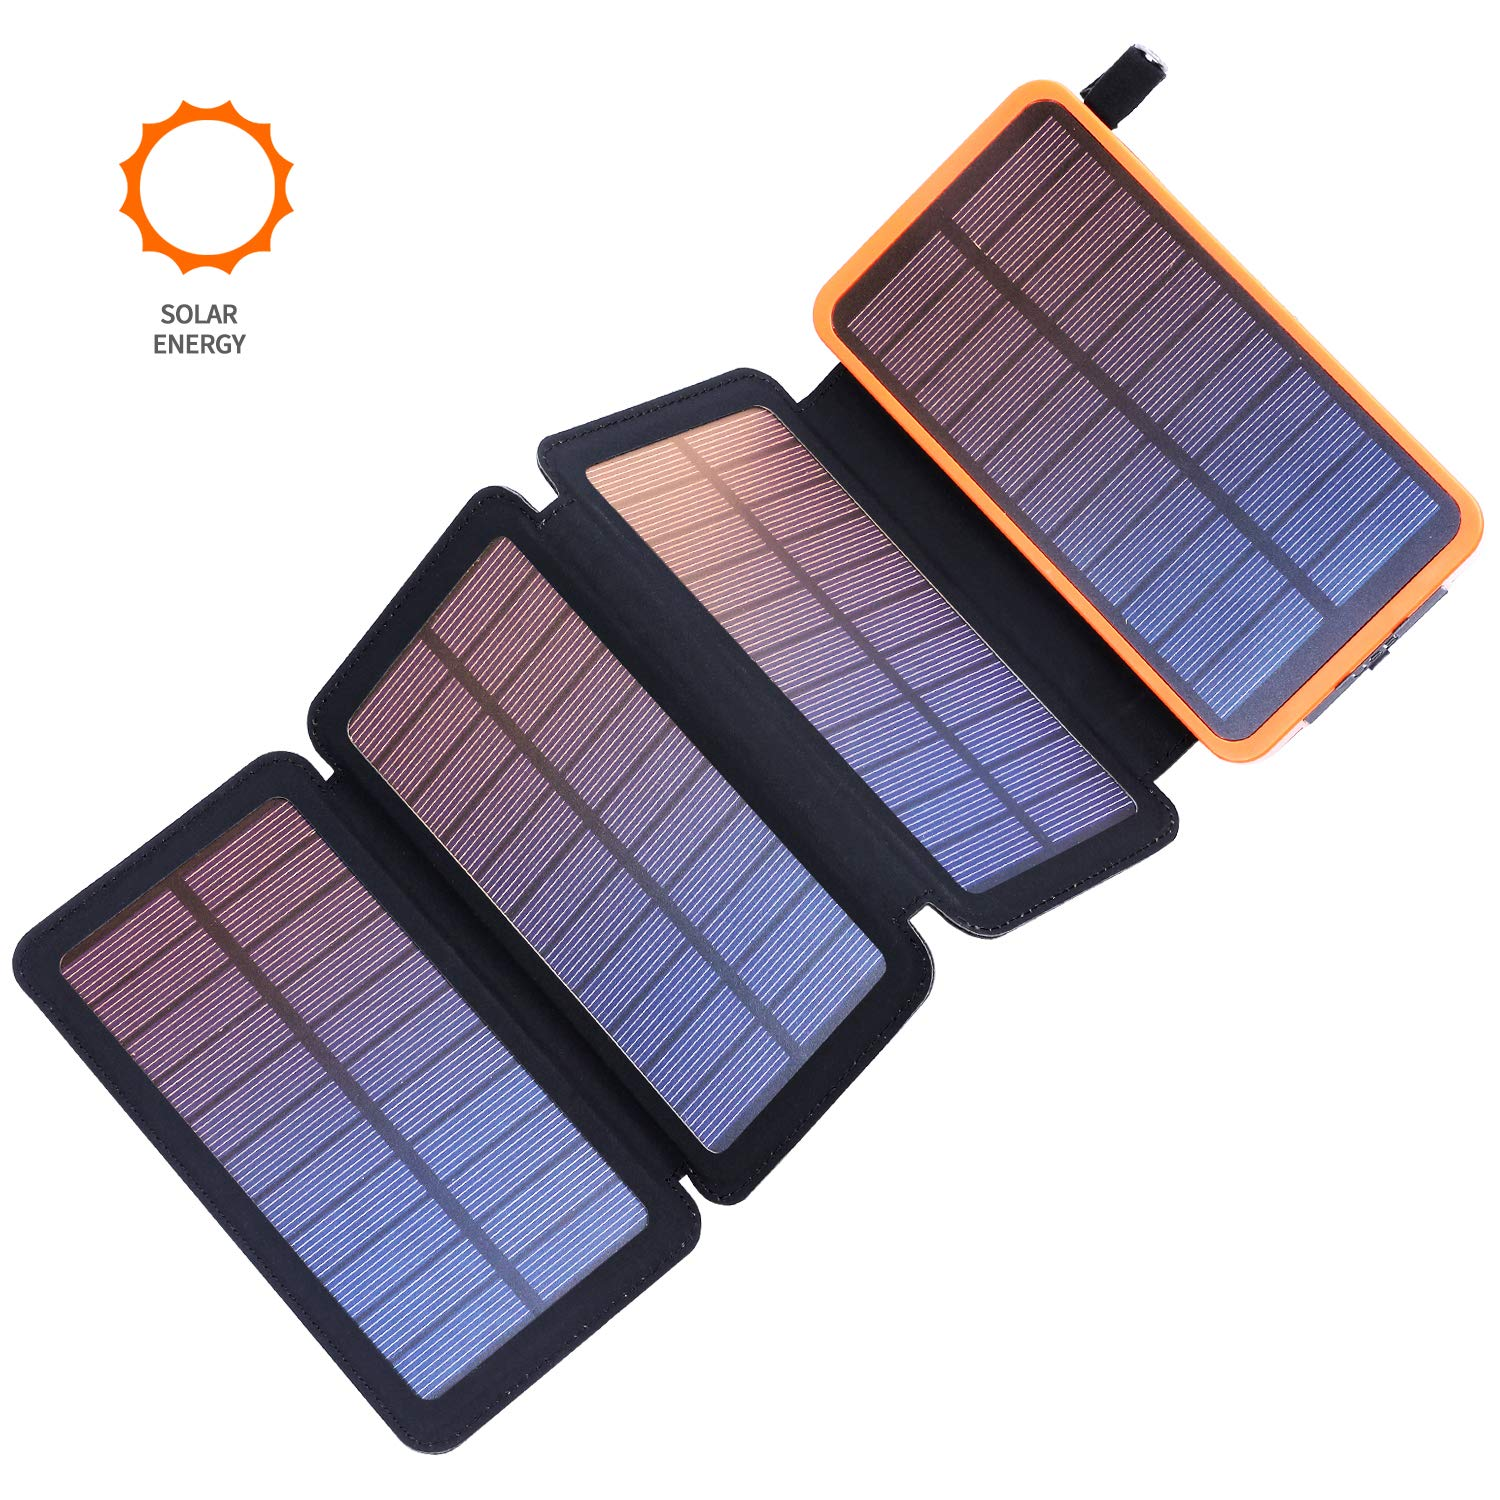 Benfiss Solar Charger 25000mAh, Portable Solar Power Bank with 4 Solar Panels and Fast Charge External Battery Pack with Dual 2.1A Outputs USB Port Compatible for Most Smartphones Tablets and More